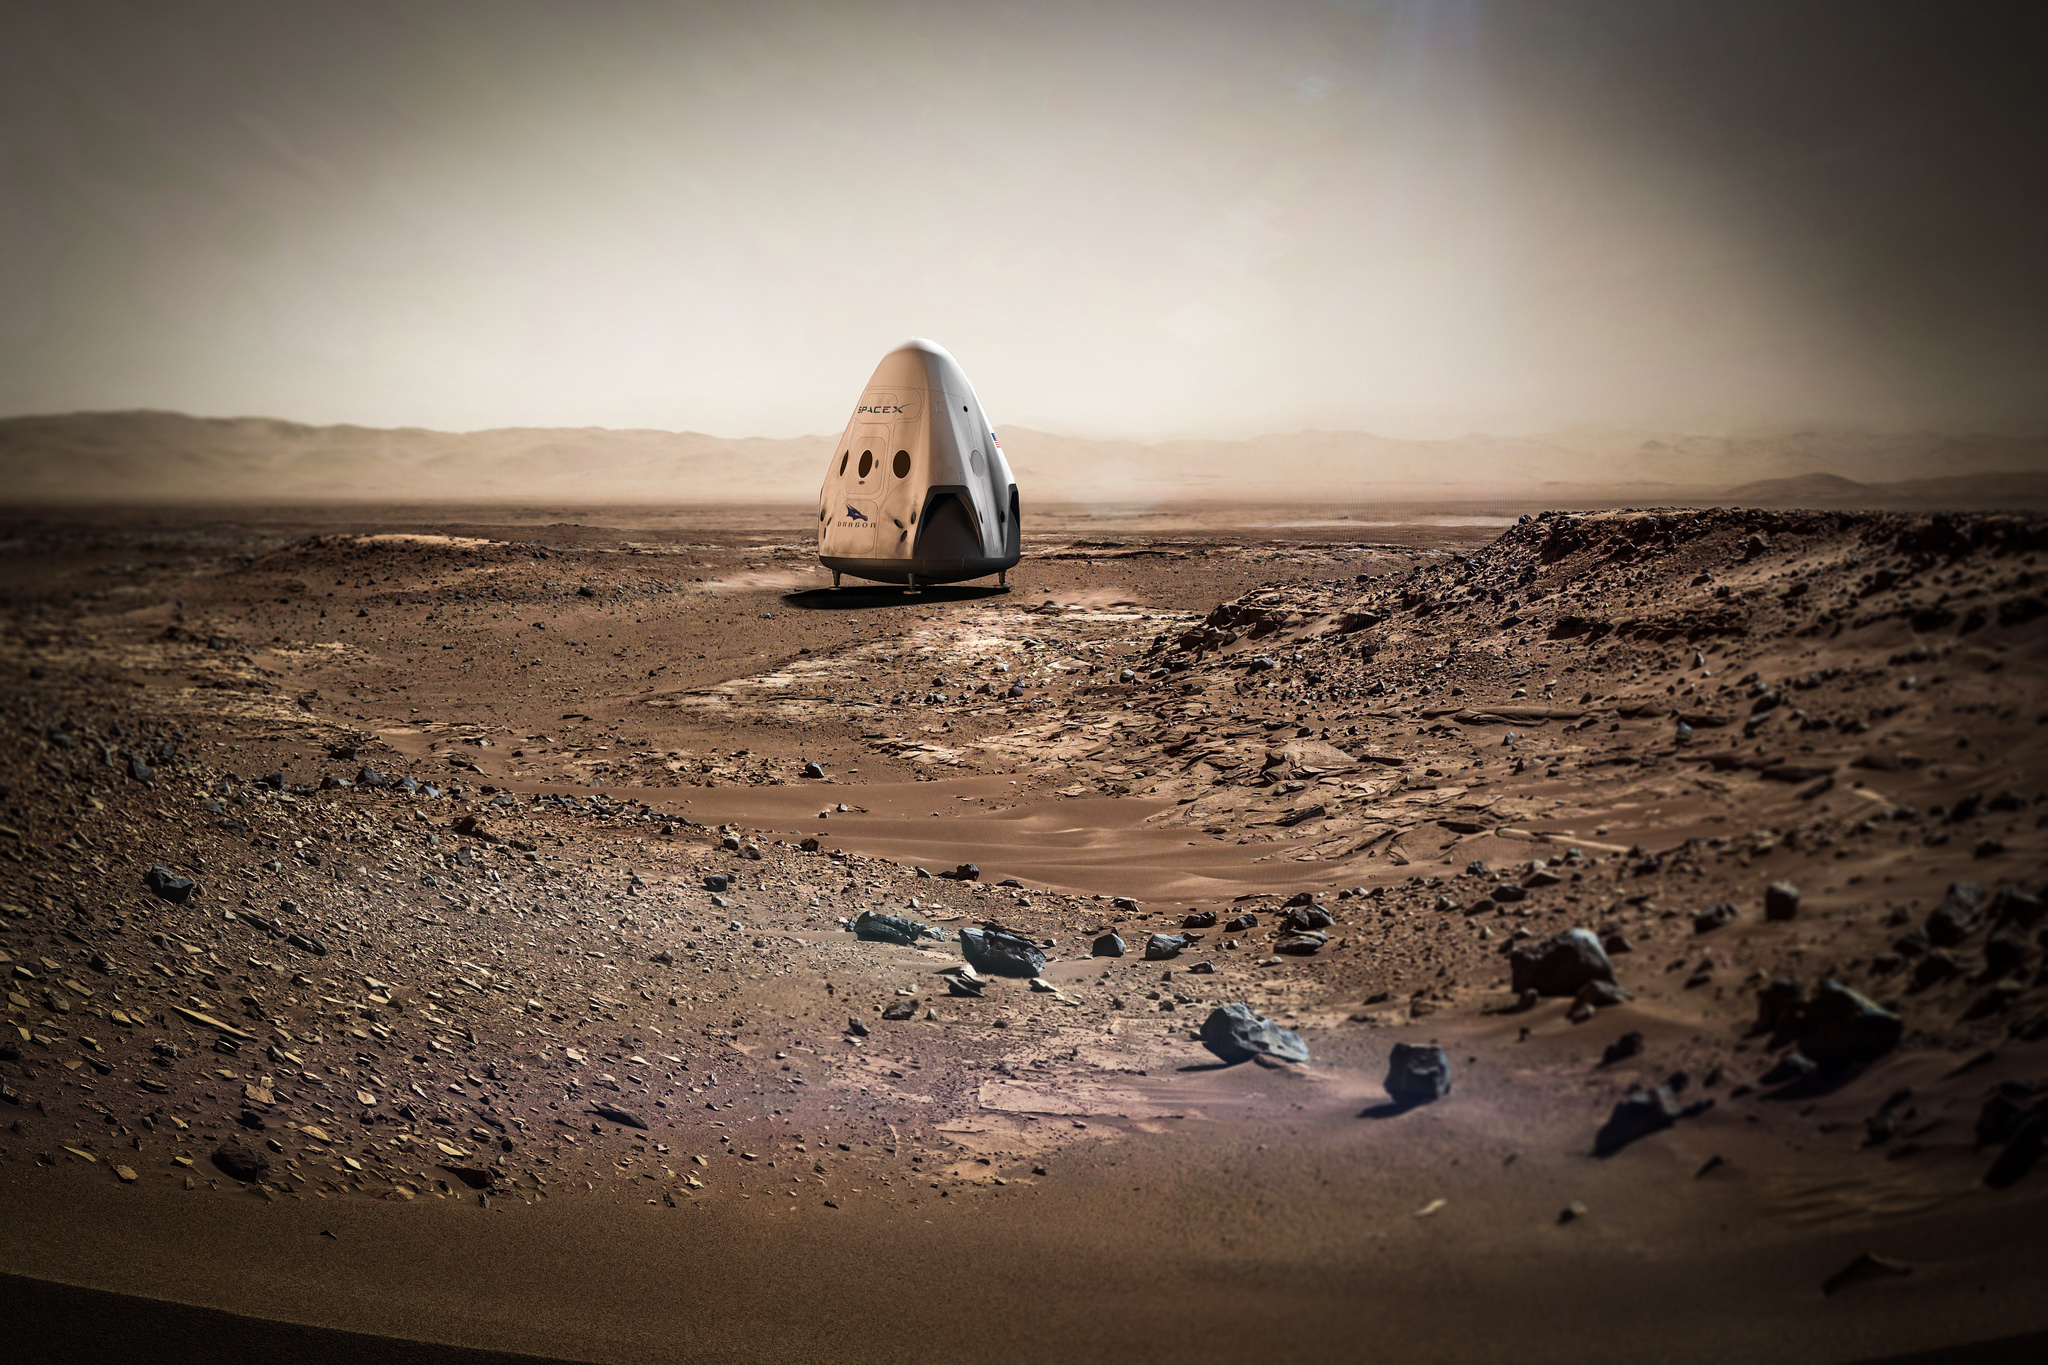 Mars has long been the goal for SpaceX and its billionaire CEO Elon Musk. Musk has said repeatedly that his goal is to make humanity become a two-planet species.